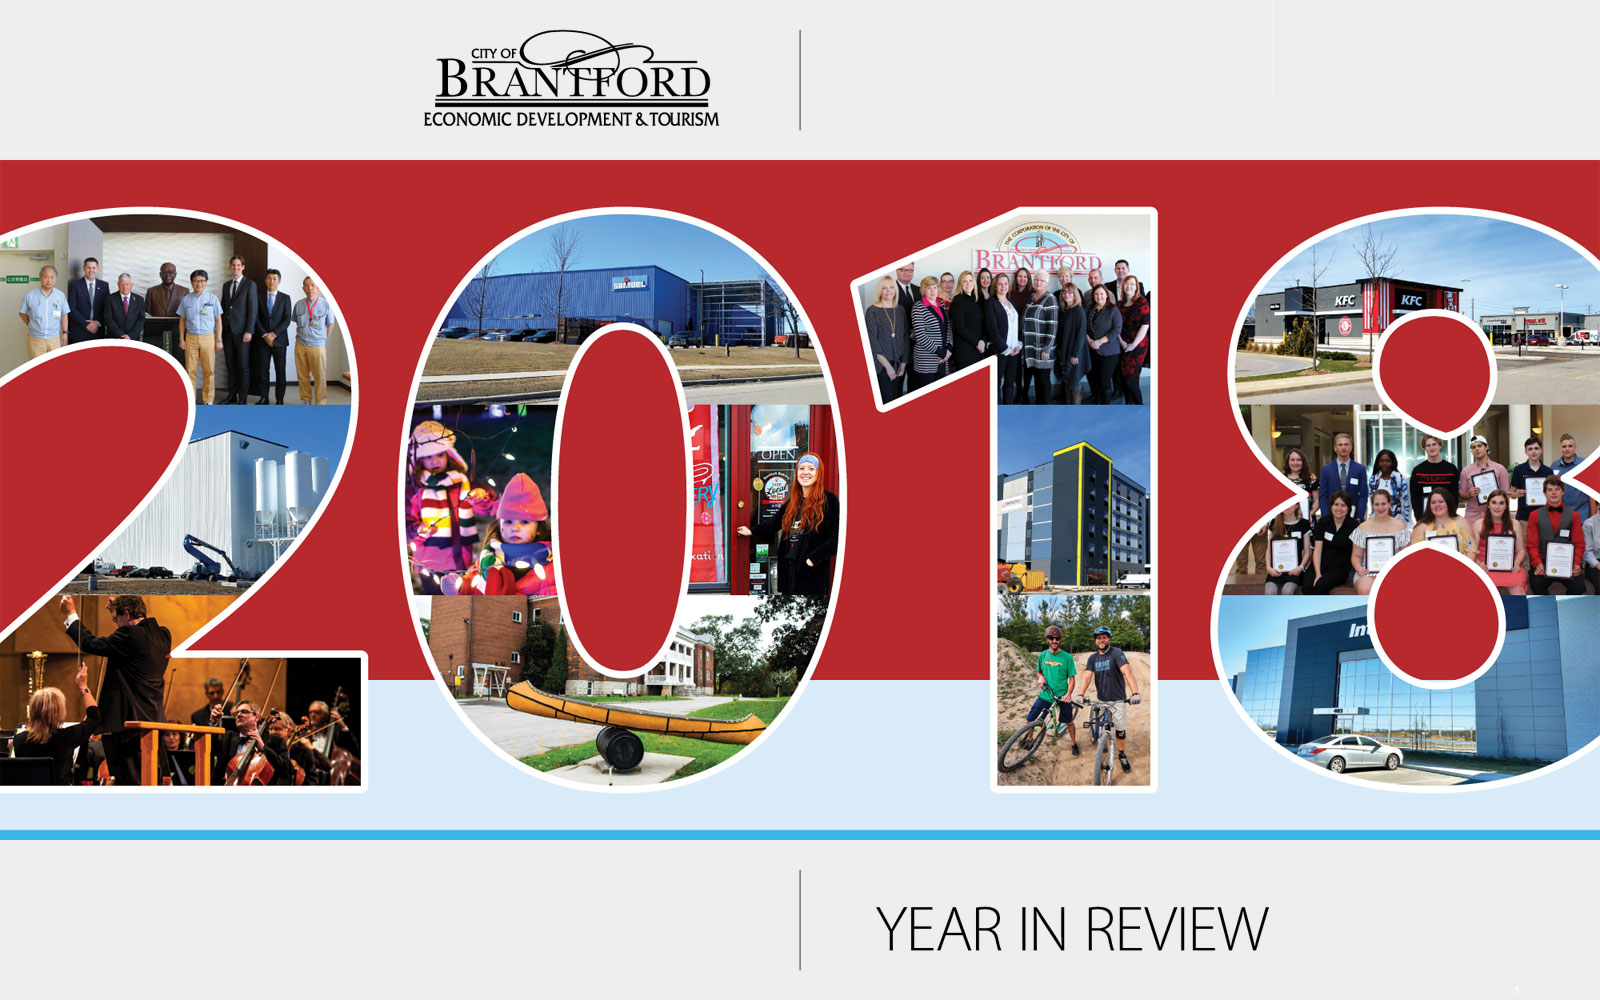 2018 Economic Development and Tourism Year in Review Report Cover